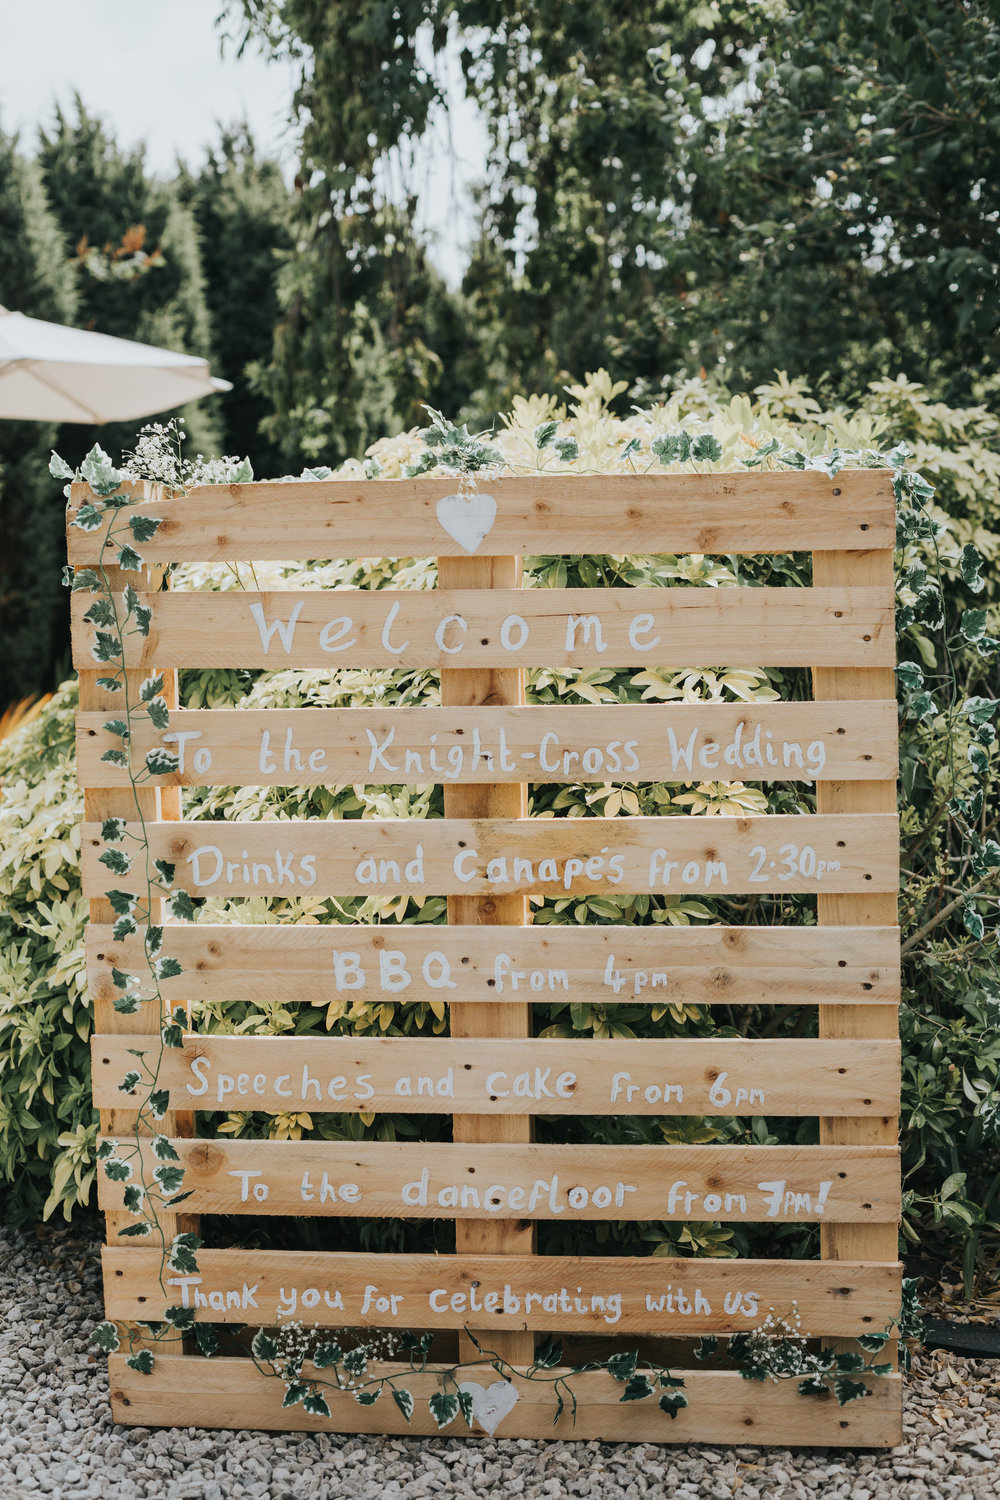 Wedding Time Table Painted on a Pallet.